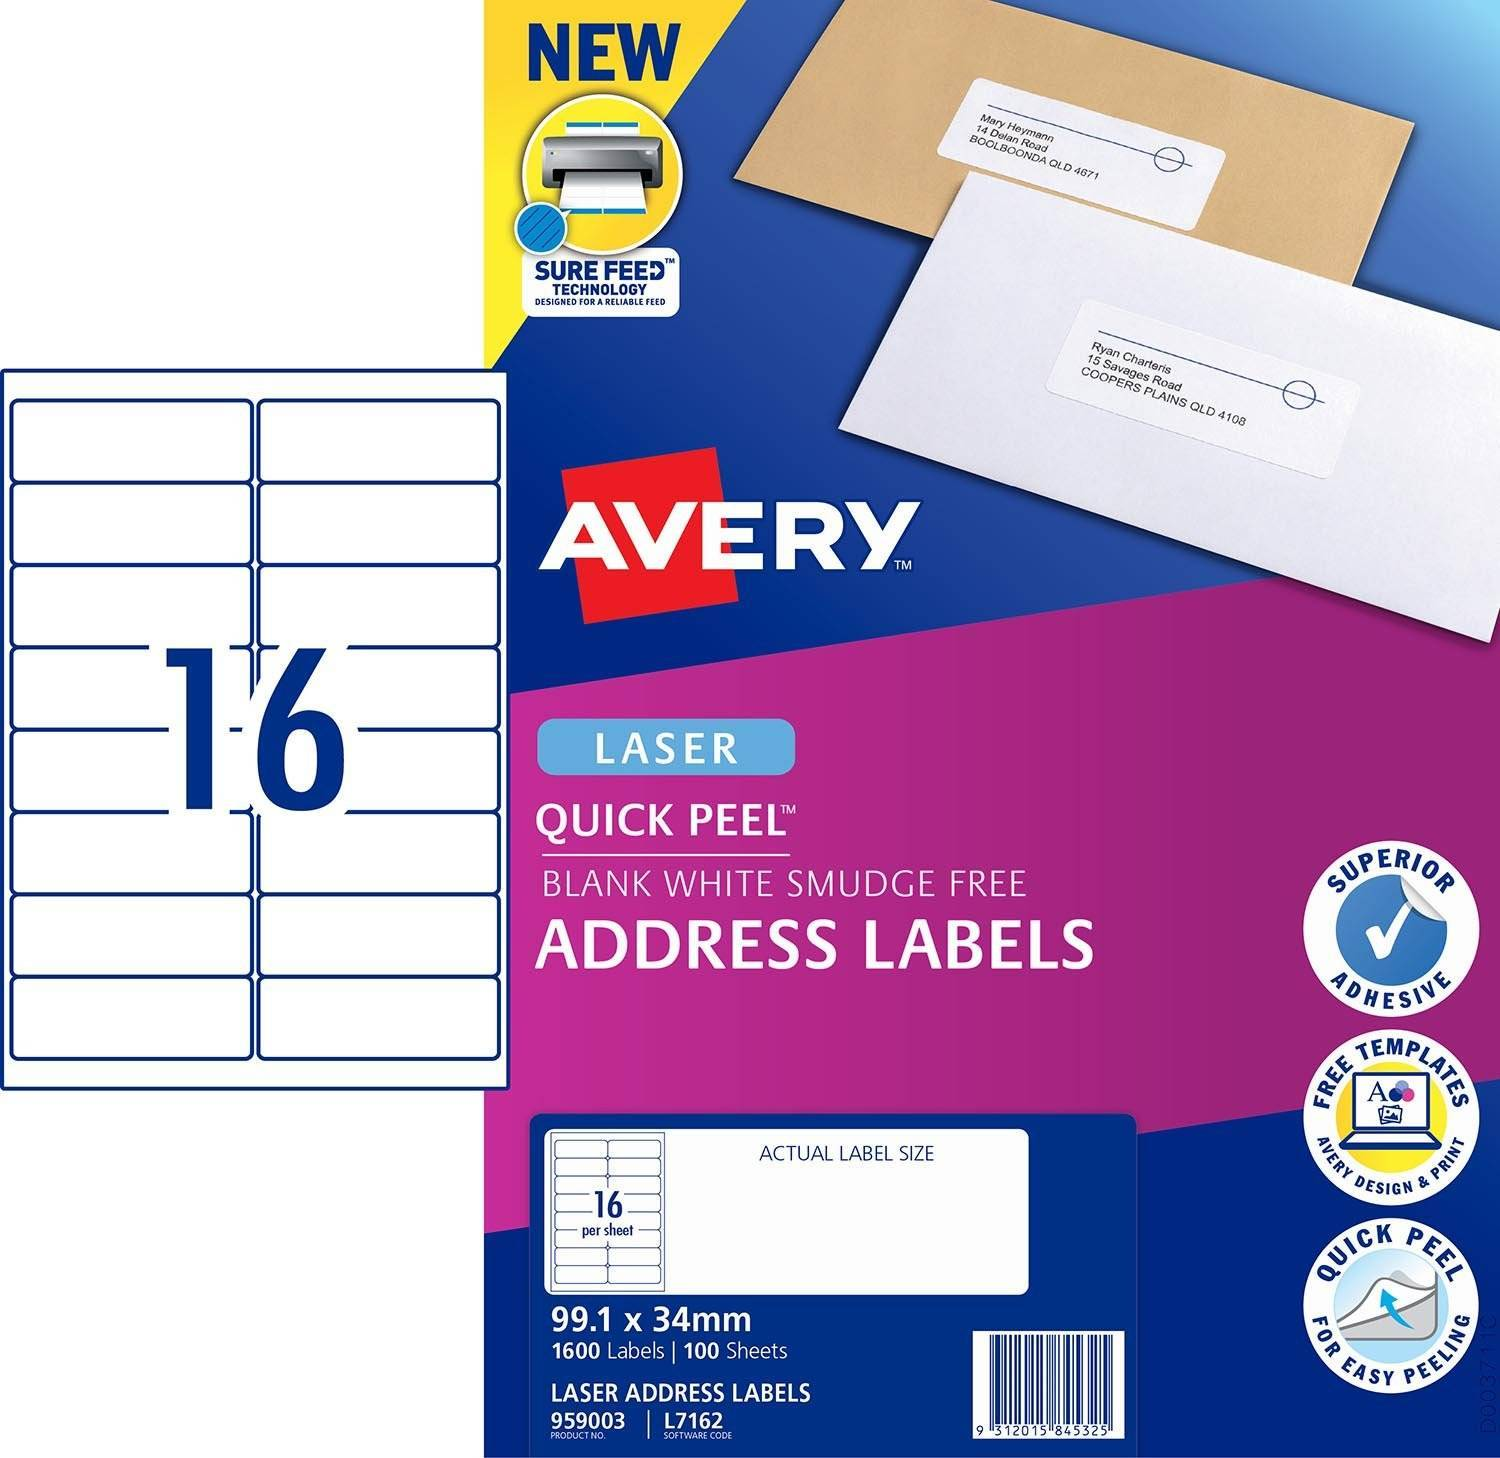 Quickpeel Laser Labels Template